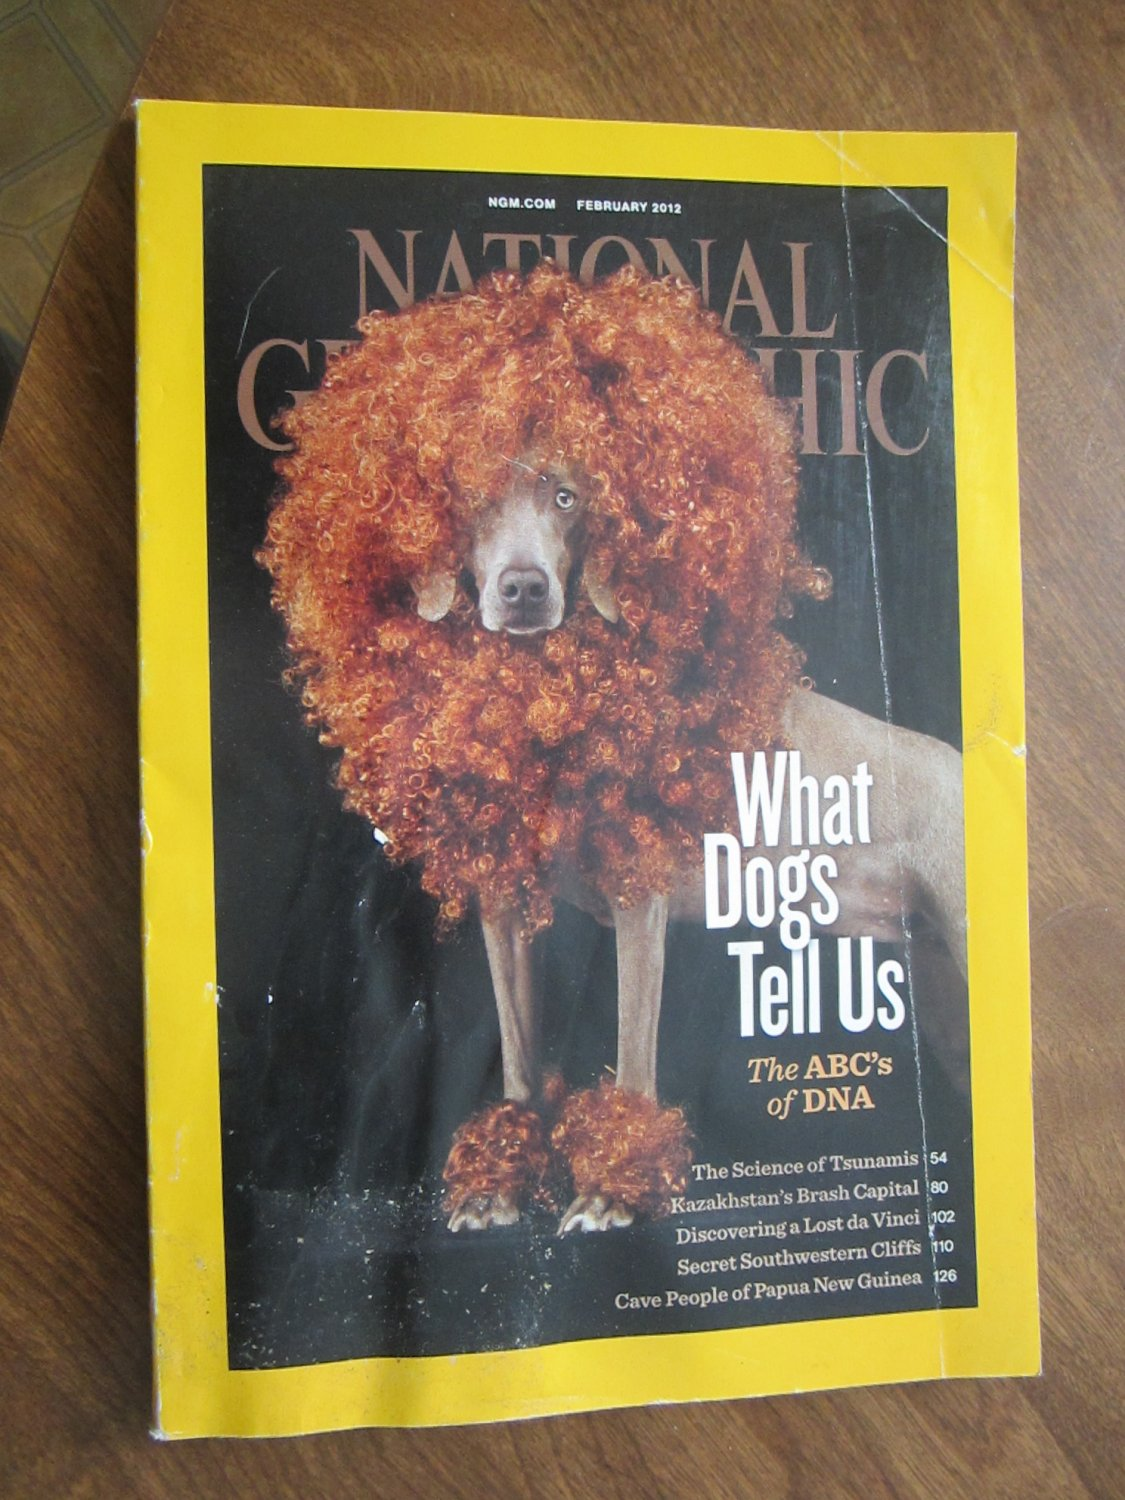 National Geographic Vol. 221 No. 2 February 2012 What Dogs Tell Us, The ABC's of DNA (G3)